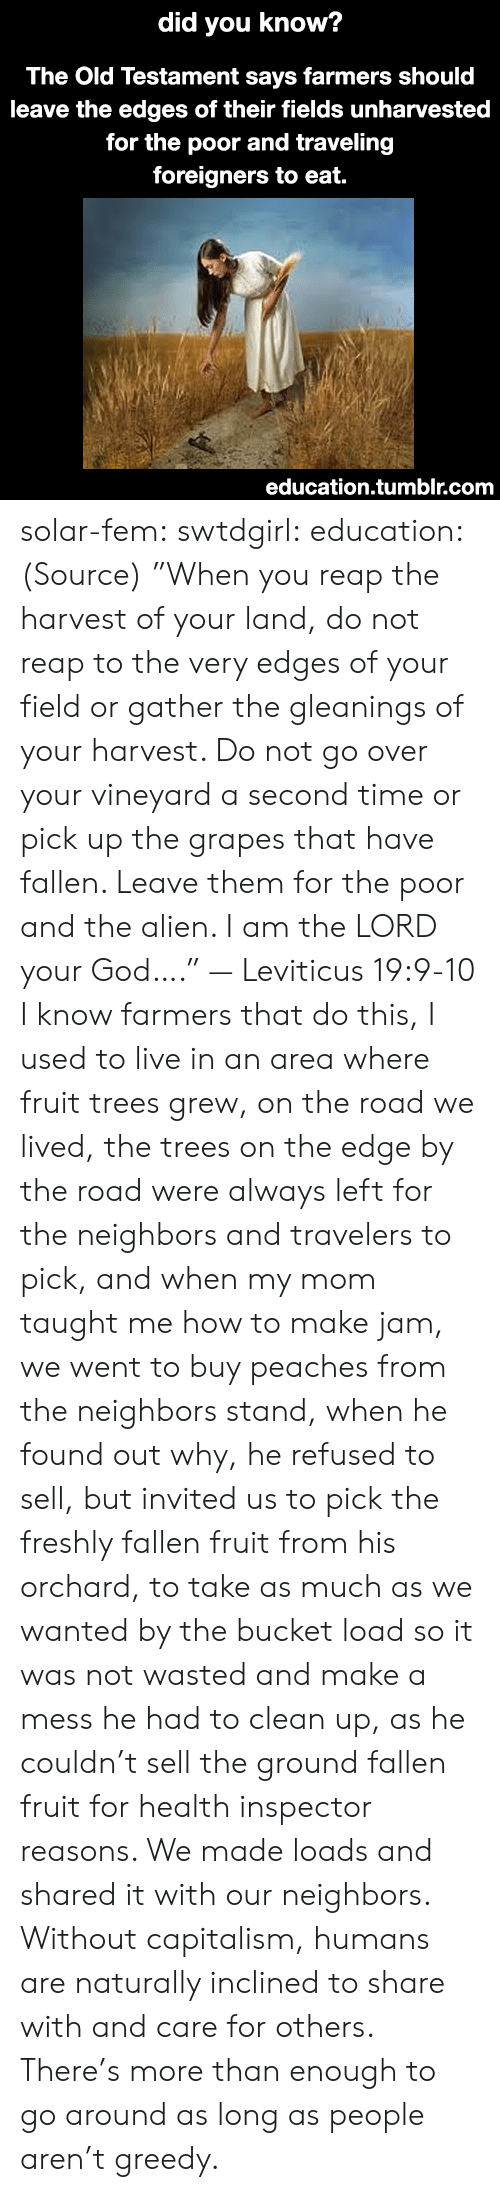 """God, Tumblr, and Alien: did  you know?  The Old Testament says farmers should  leave the edges of their fields unharvested  for the poor and traveling  foreigners to eat.  education.tumblr.com solar-fem:  swtdgirl:  education:   (Source) """"When you reap the harvest of your land, do not reap to the very edges of your field or gather the gleanings of your harvest. Do not go over your vineyard a second time or pick up the grapes that have fallen. Leave them for the poor and the alien. I am the LORD your God…."""" — Leviticus 19:9-10     I know farmers that do this, I used to live in an area where fruit trees grew, on the road we lived, the trees on the edge by the road were always left for the neighbors and travelers to pick, and when my mom taught me how to make jam, we went to buy peaches from the neighbors stand, when he found out why, he refused to sell, but invited us to pick the freshly fallen fruit from his orchard, to take as much as we wanted by the bucket load so it was not wasted and make a mess he had to clean up, as he couldn't sell the ground fallen fruit for health inspector reasons. We made loads and shared it with our neighbors.  Without capitalism, humans are naturally inclined to share with and care for others. There's more than enough to go around as long as people aren't greedy."""